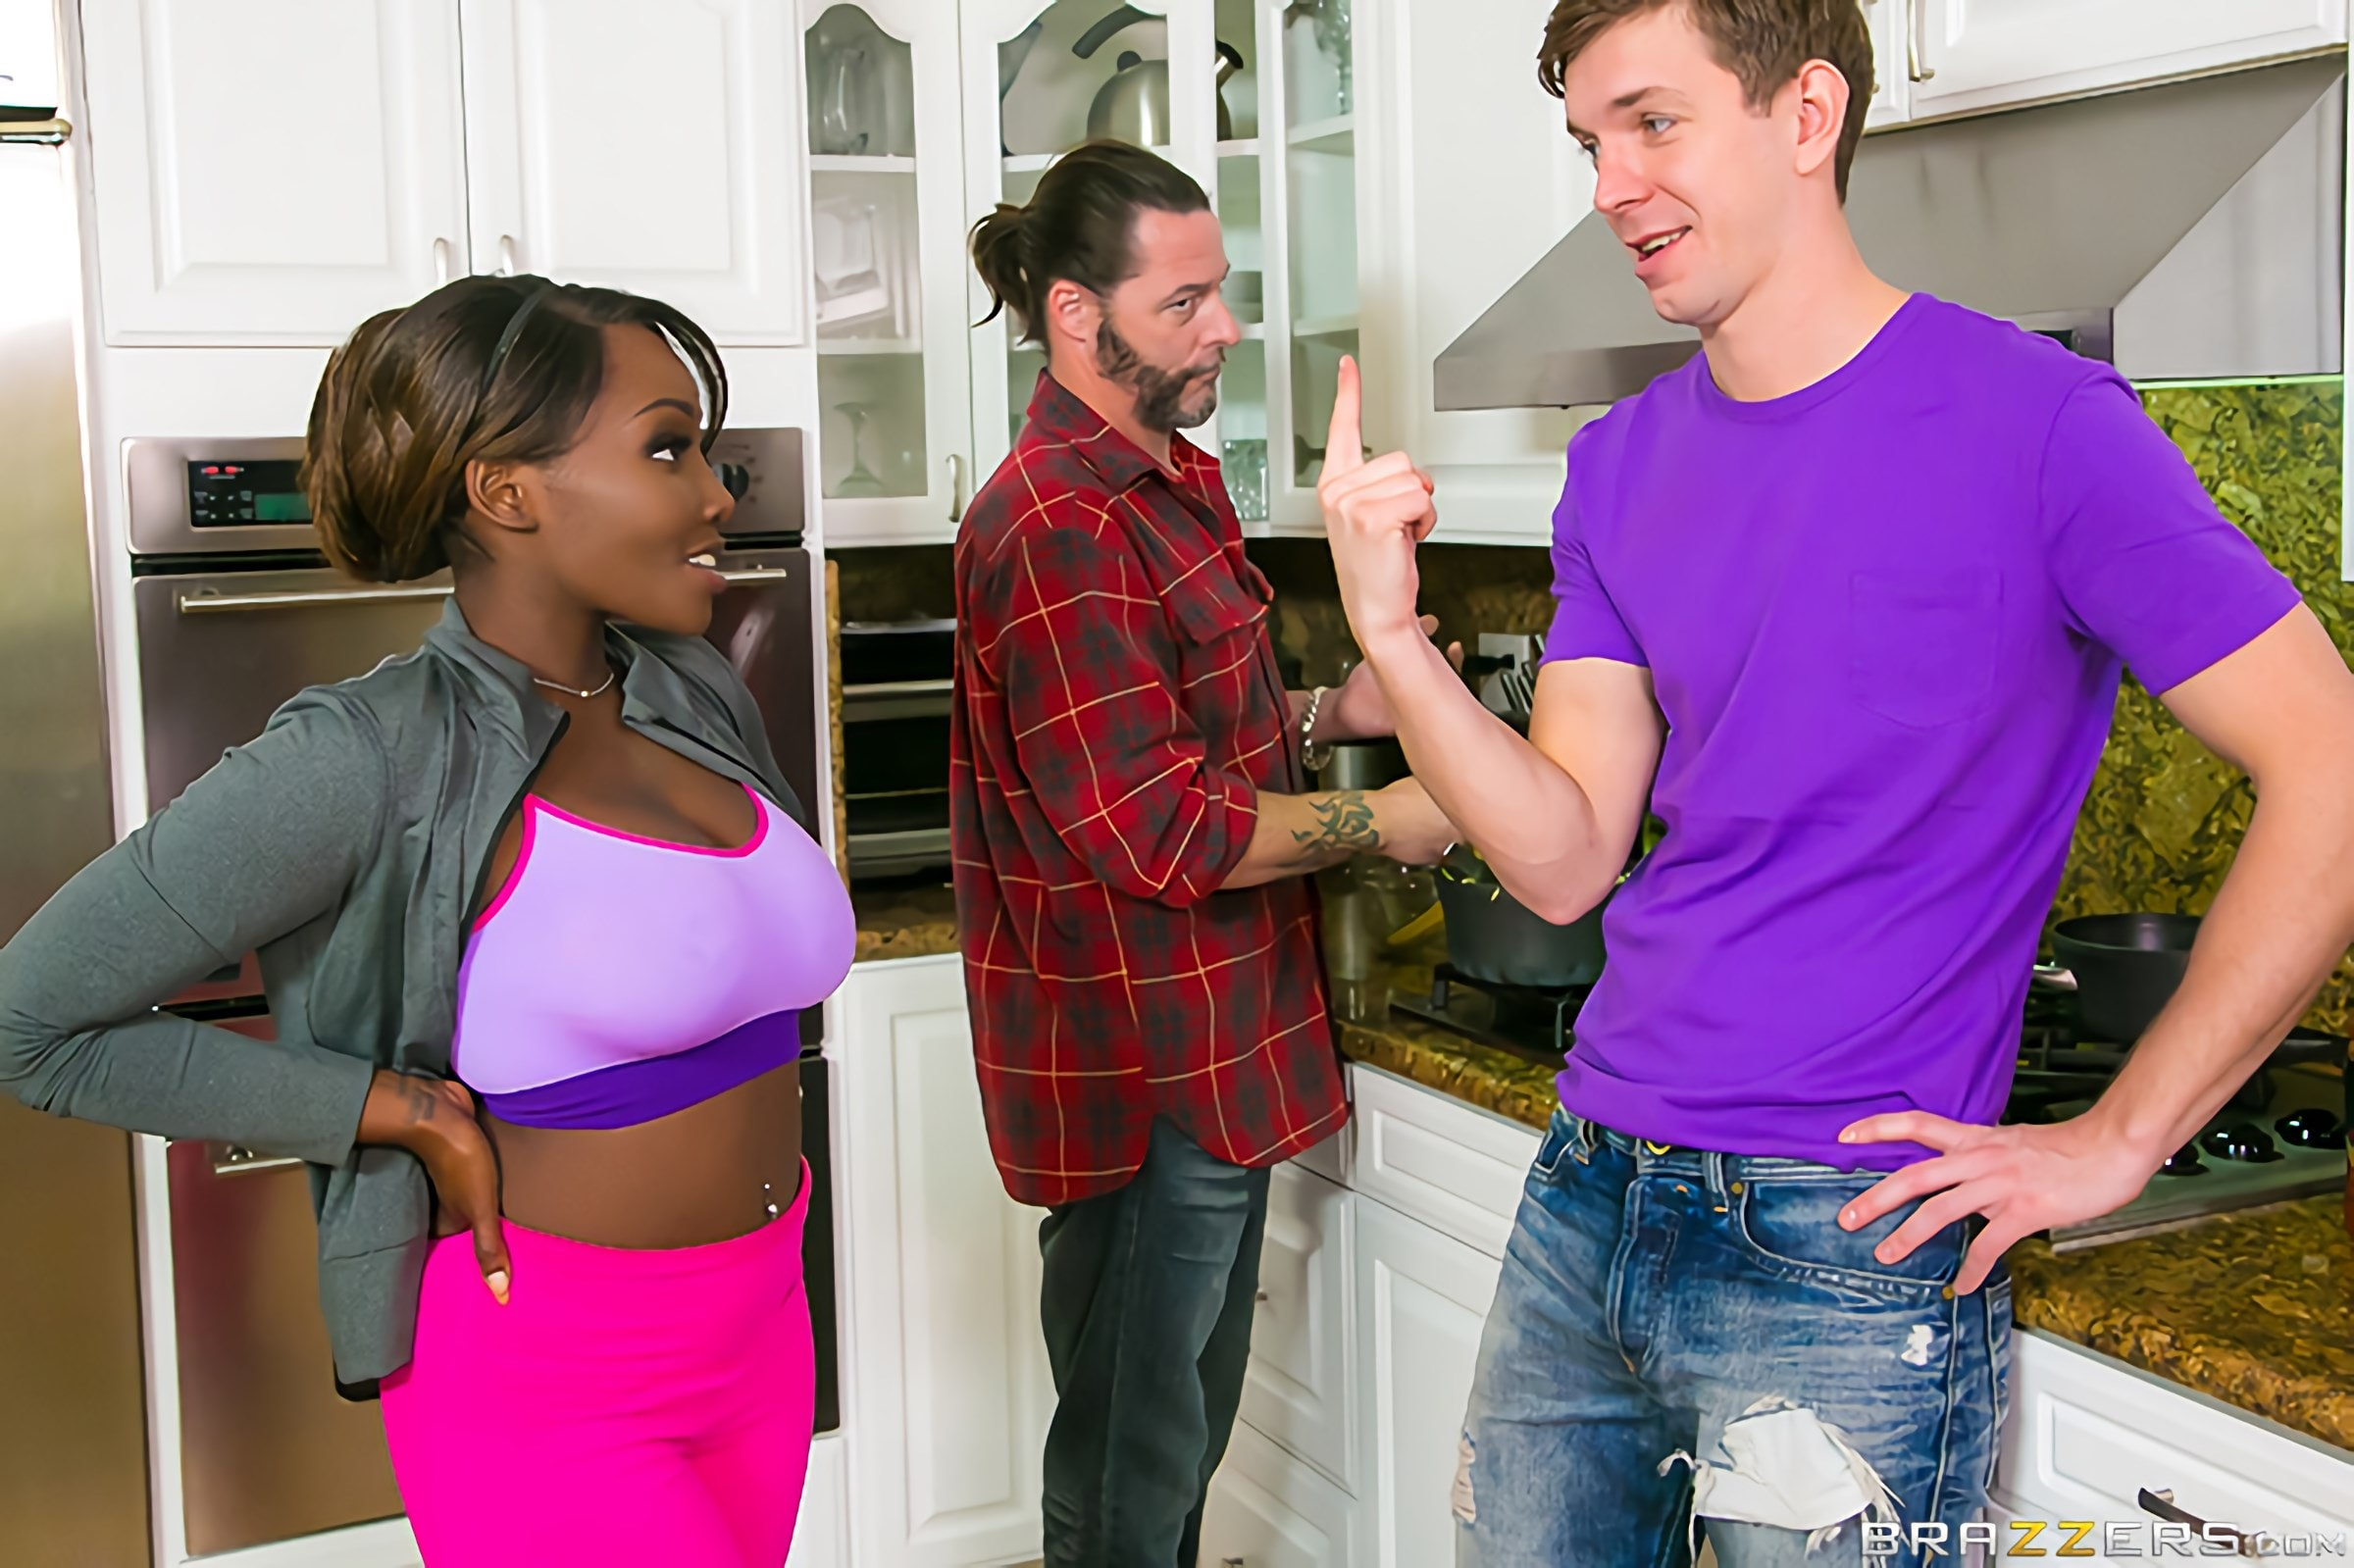 Brazzers 'Soaking Stepmom' starring Osa Lovely (photo 1)